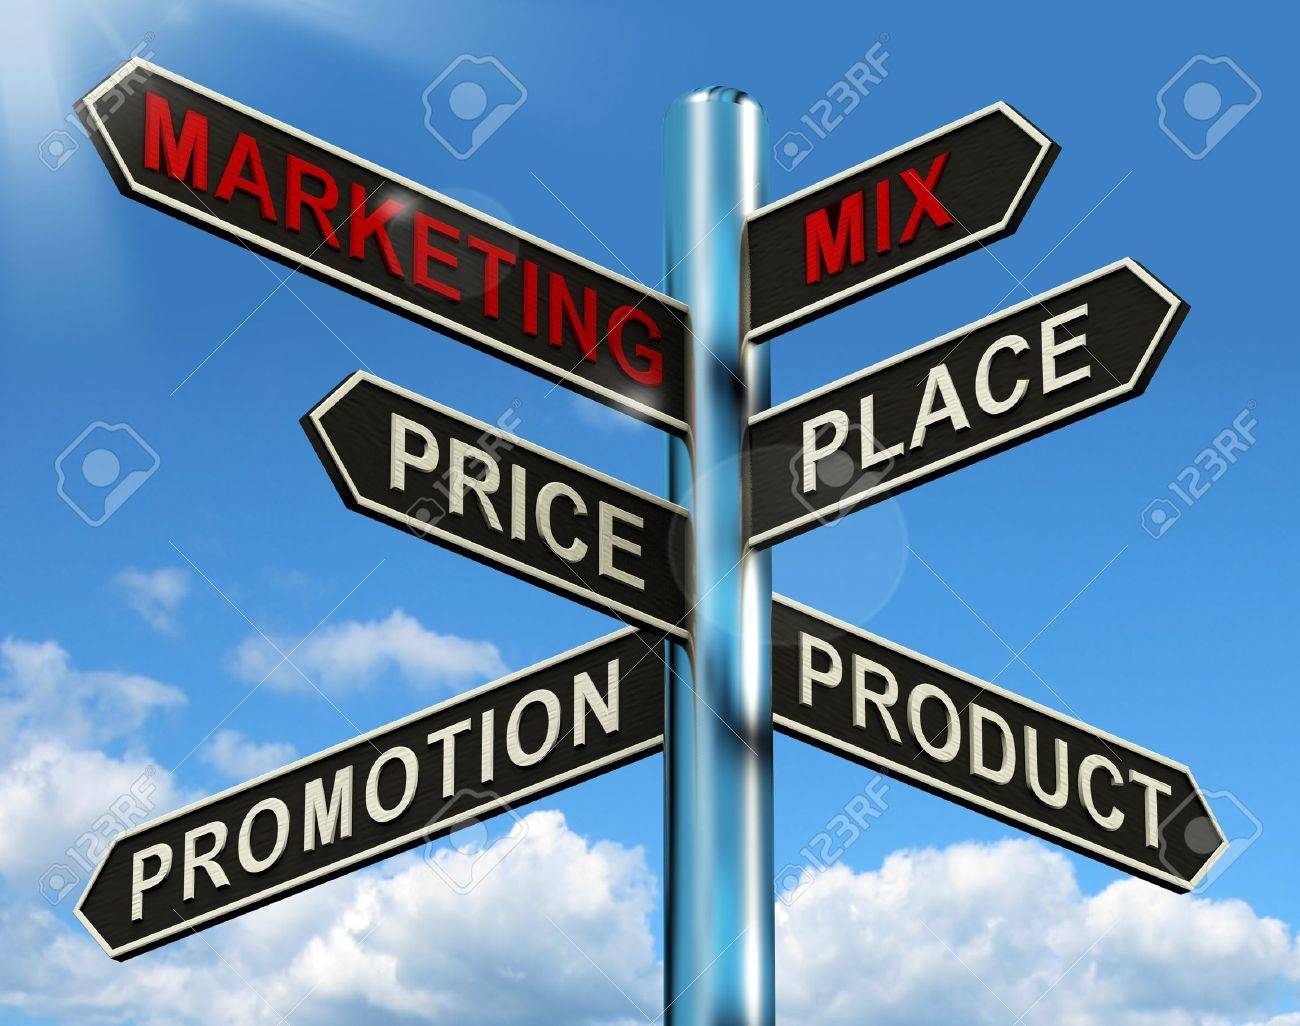 Marketing Mix Signpost With Place Price Product Plus Promotions Stock Photo - 13564624